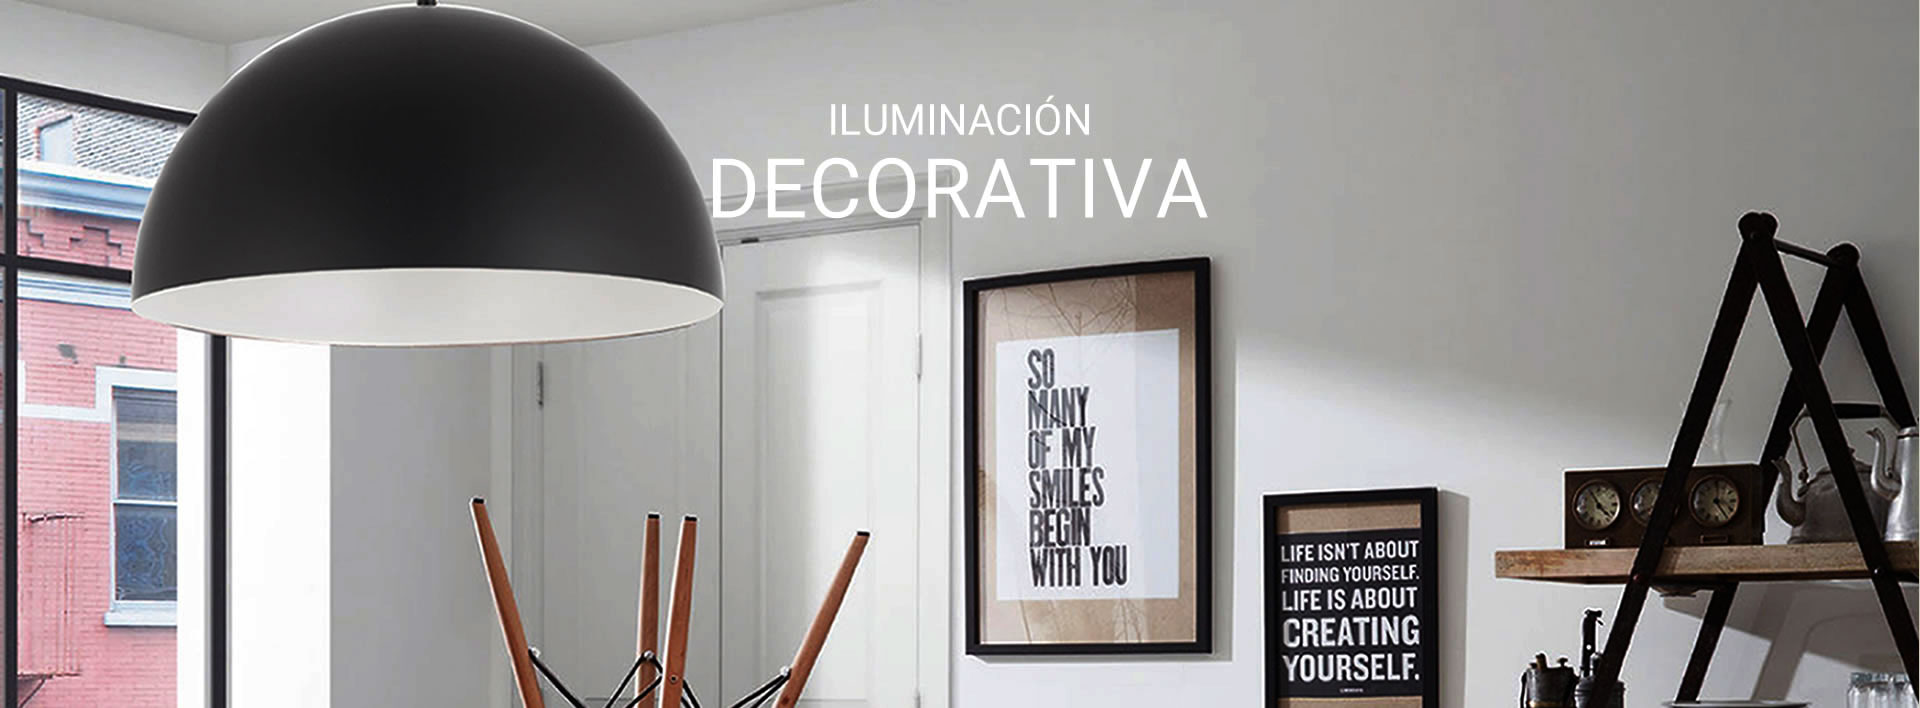 iluminacion-decorativa-productos